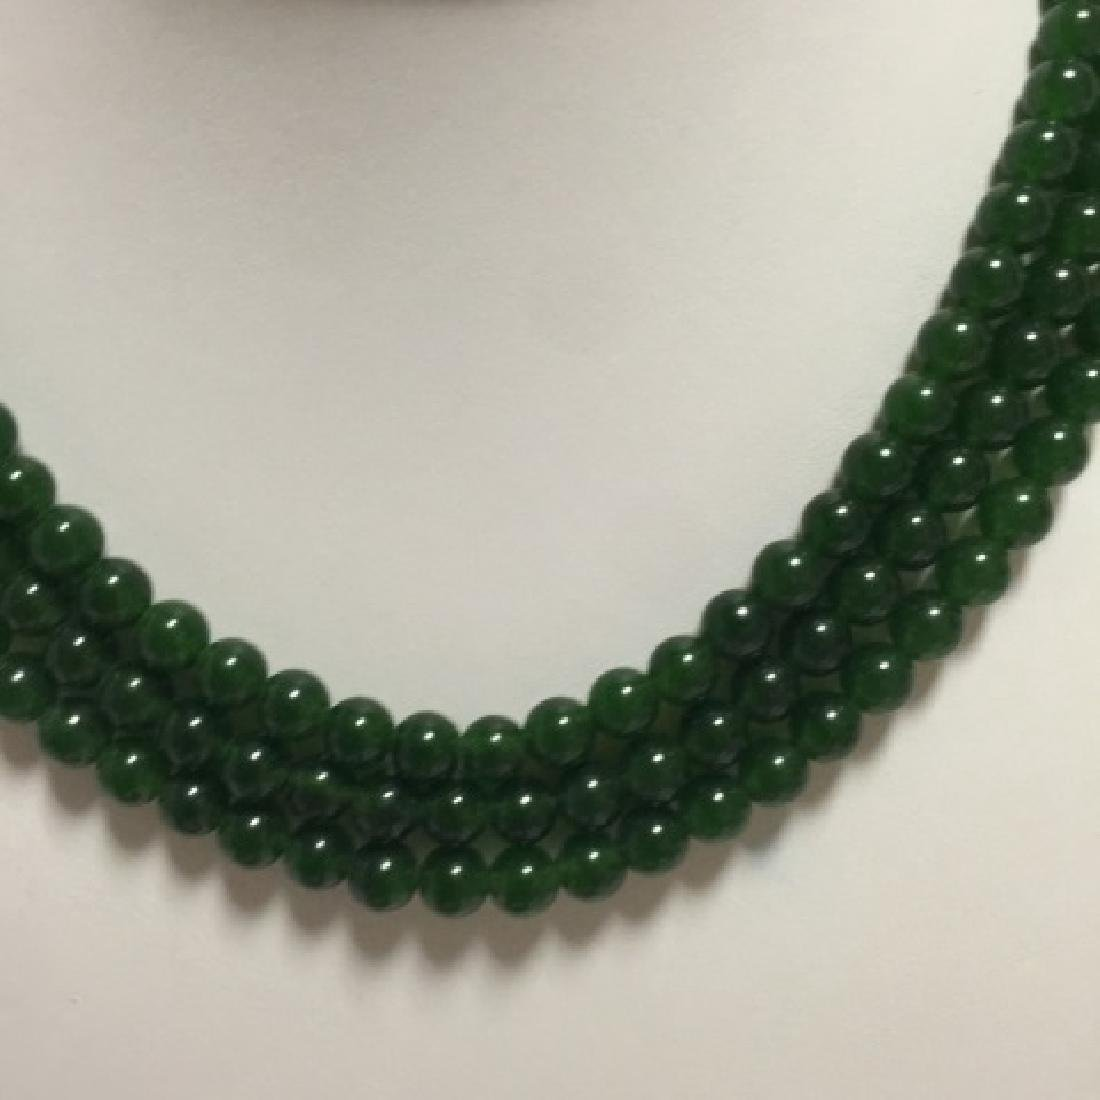 Three Chinese Green Jade Round Bead Necklaces - 4